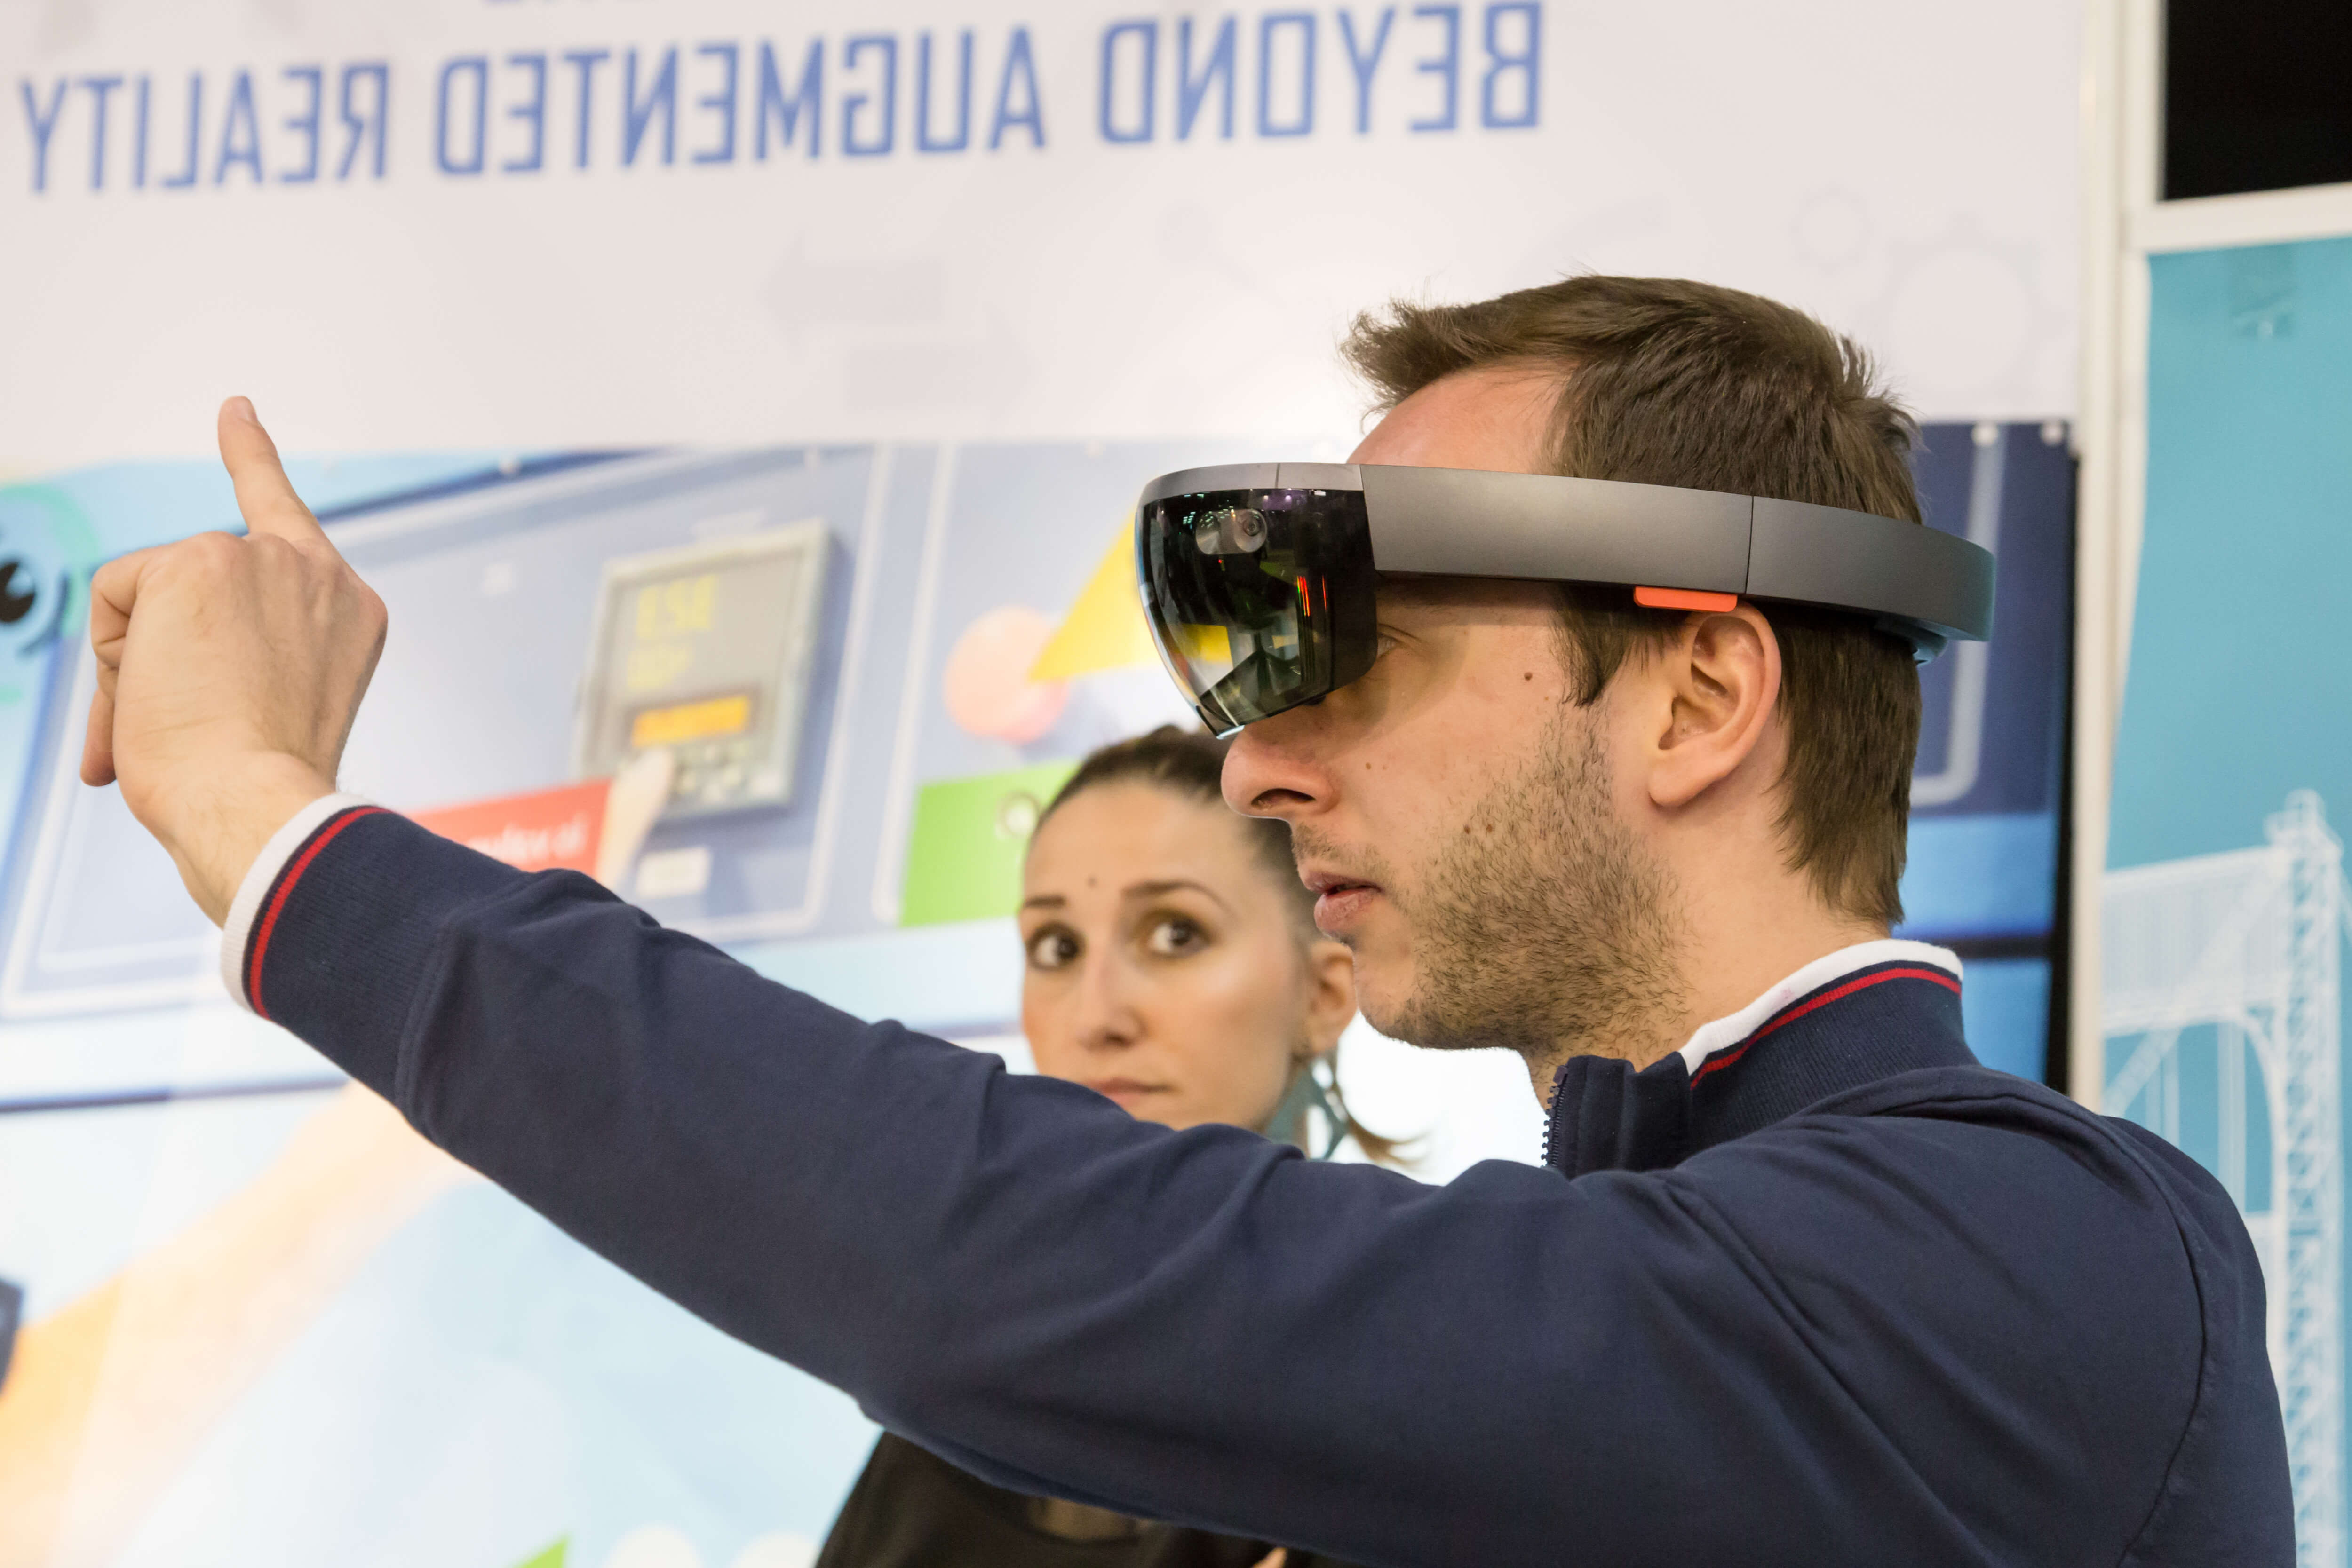 Customers and developers both need training on AR and VR. Source: Shutterstock